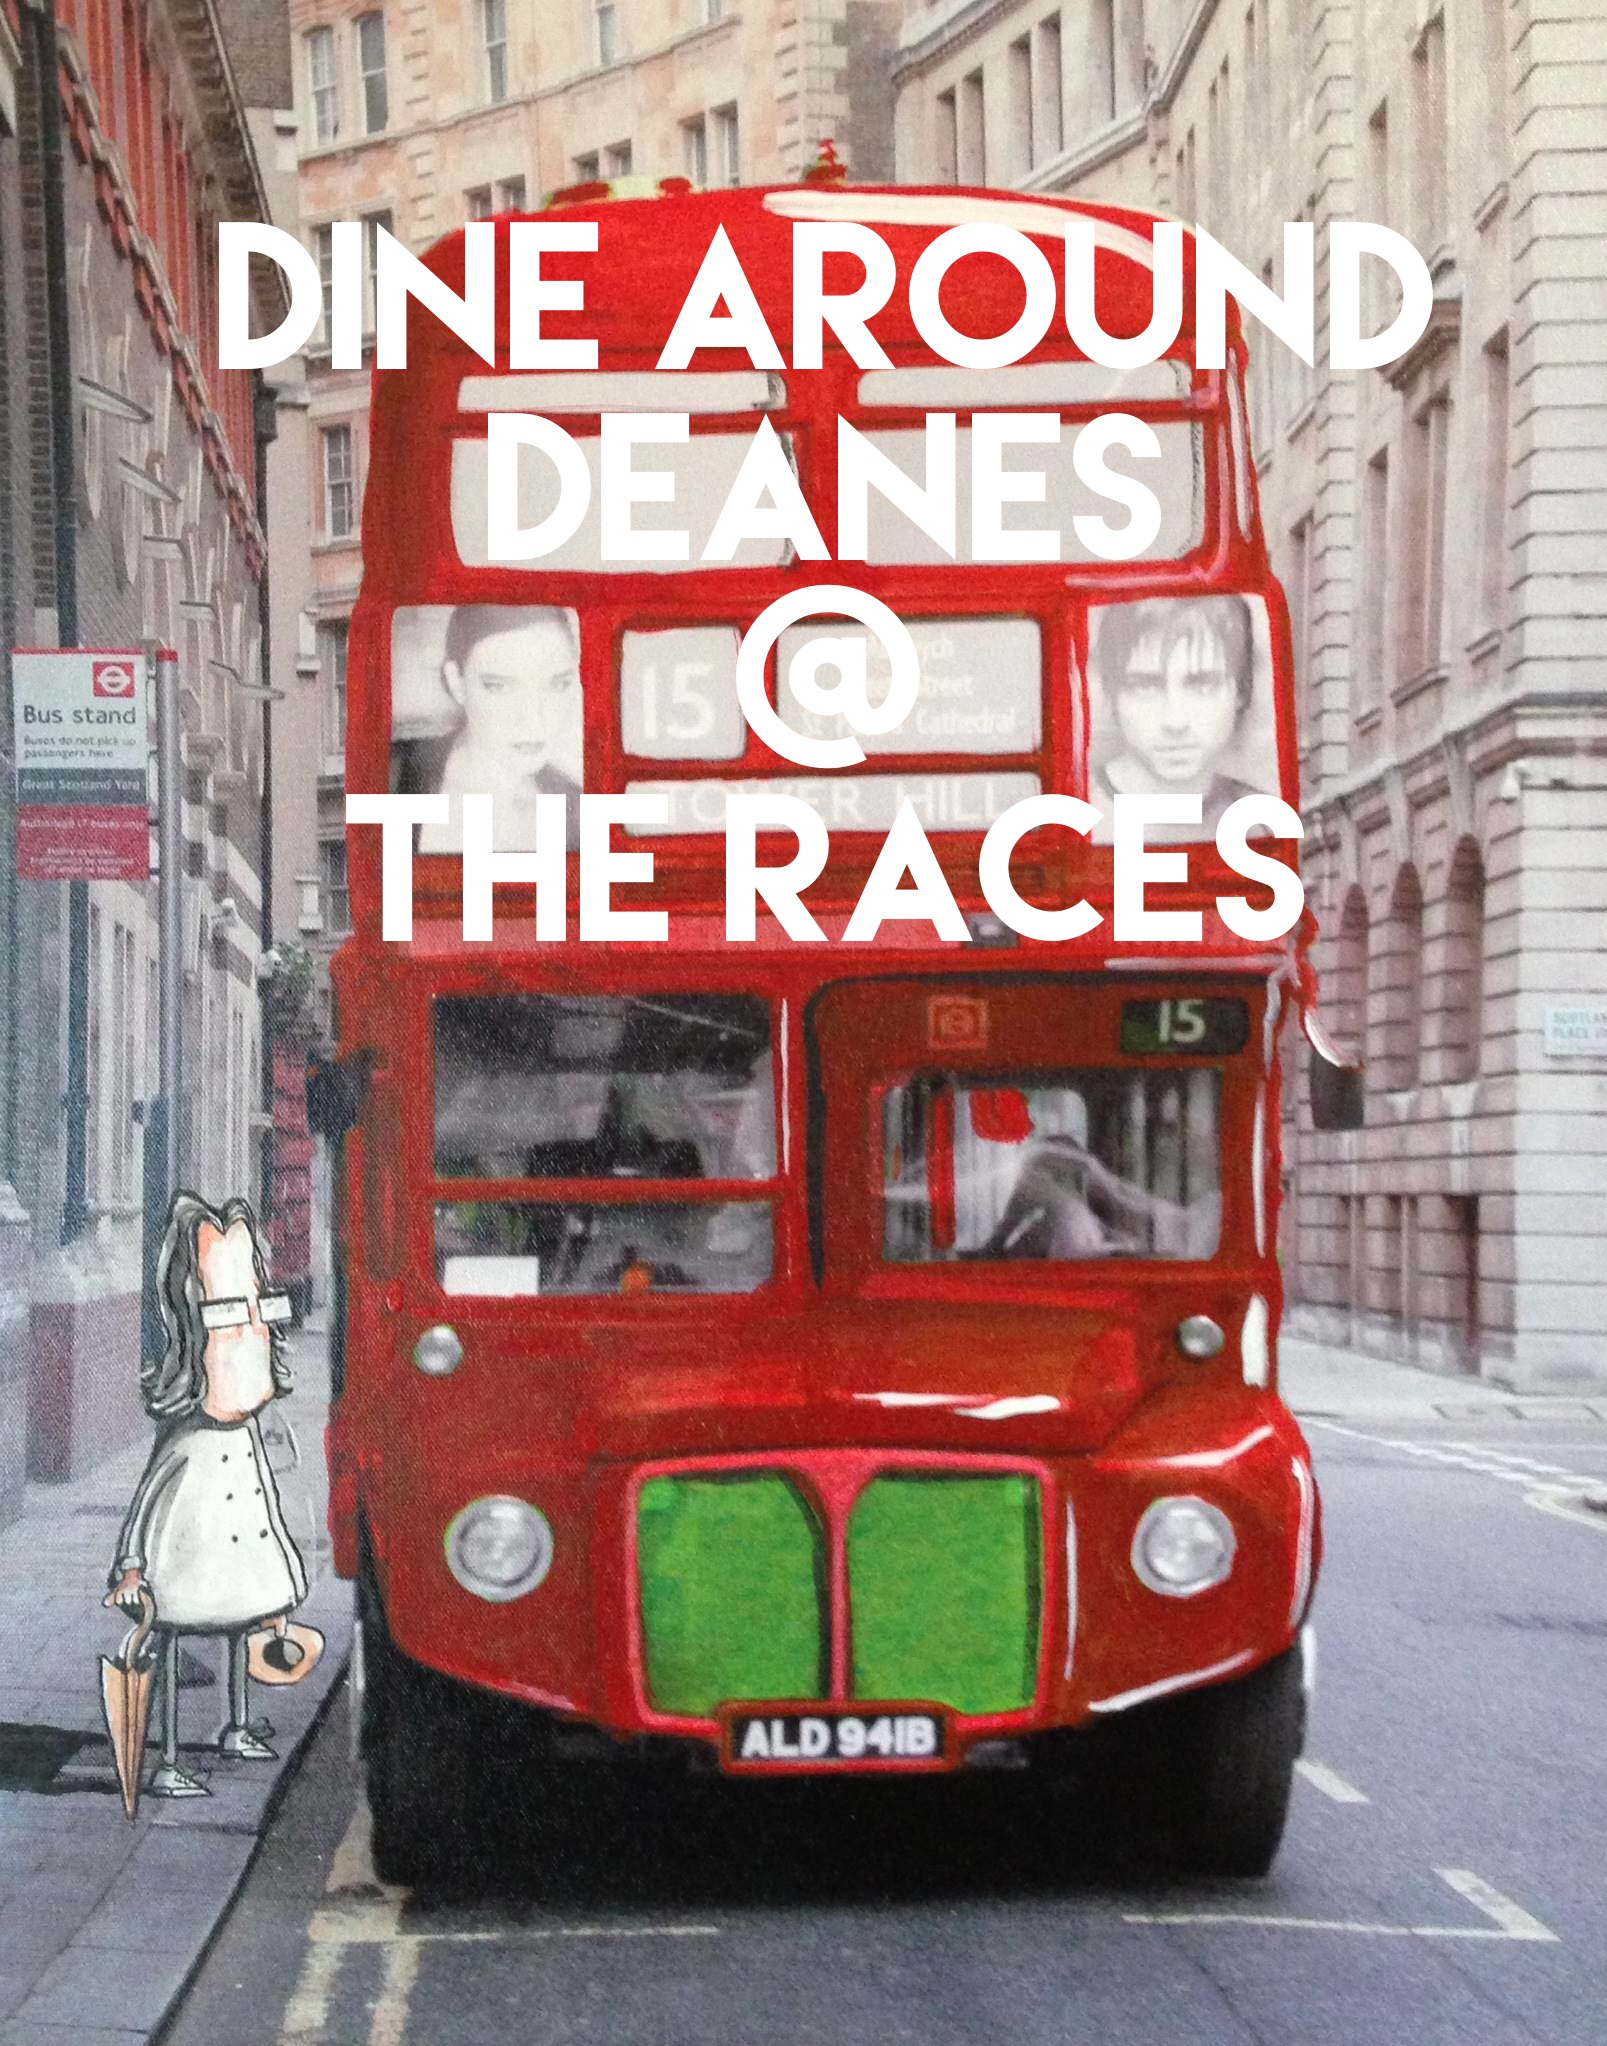 Dine Around Deanes at the races bus ticket.JPG